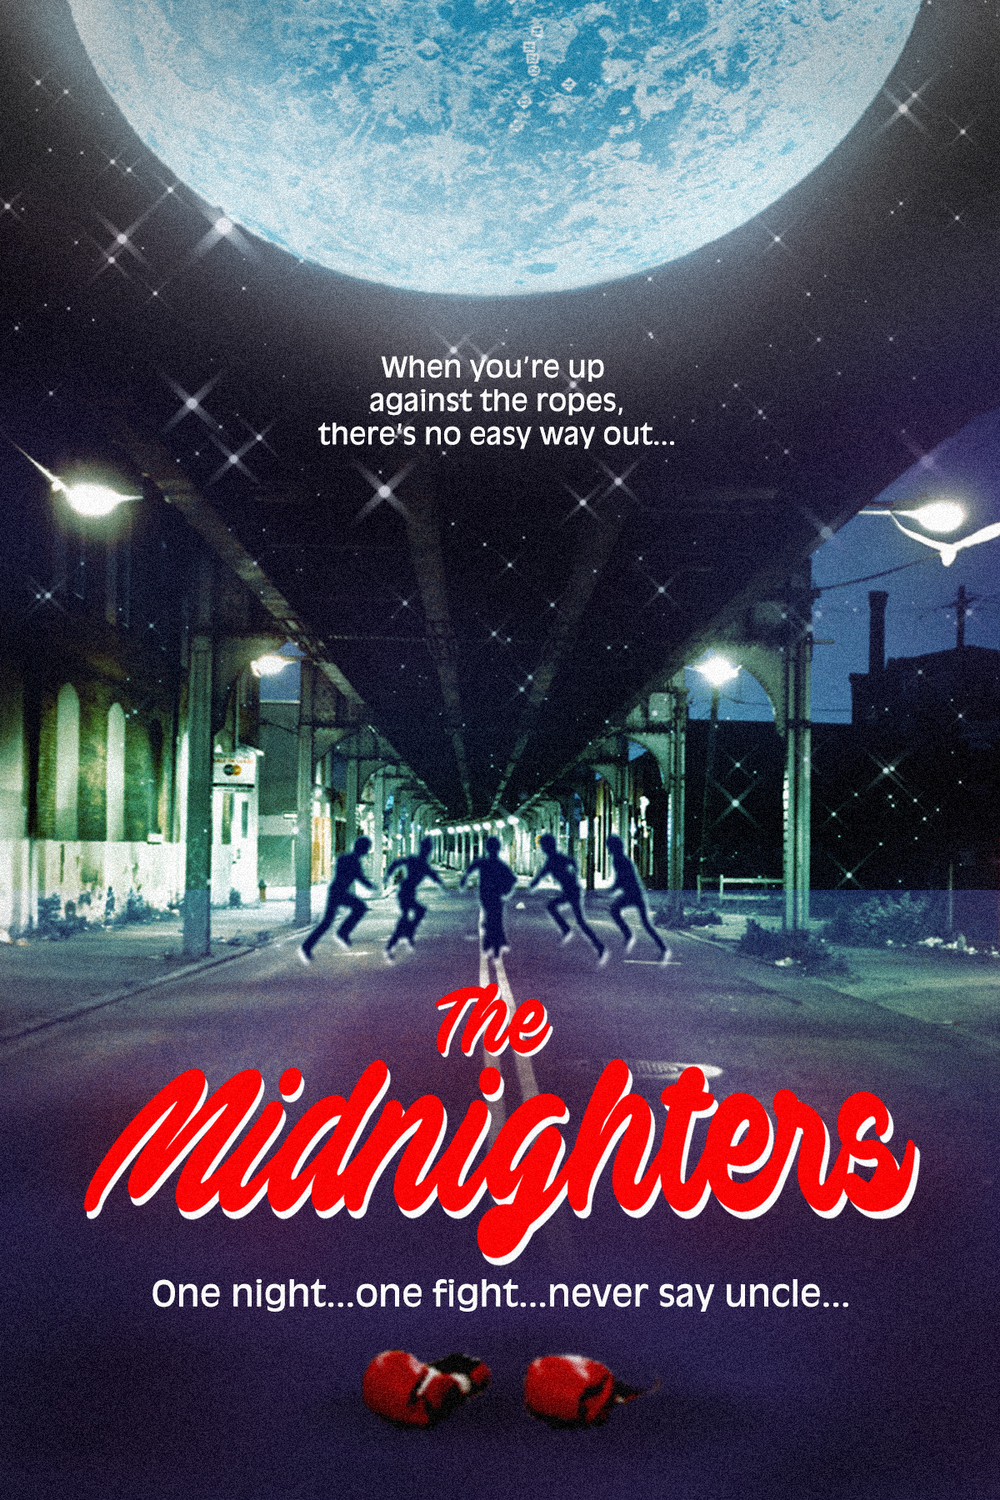 Olde City Escape Games's second escape room adventure: The Midnighters. This cinematic explosion takes on many 1980s movie inspirations such as Warriors, Goonies, Rocky, and most current Stranger Things.